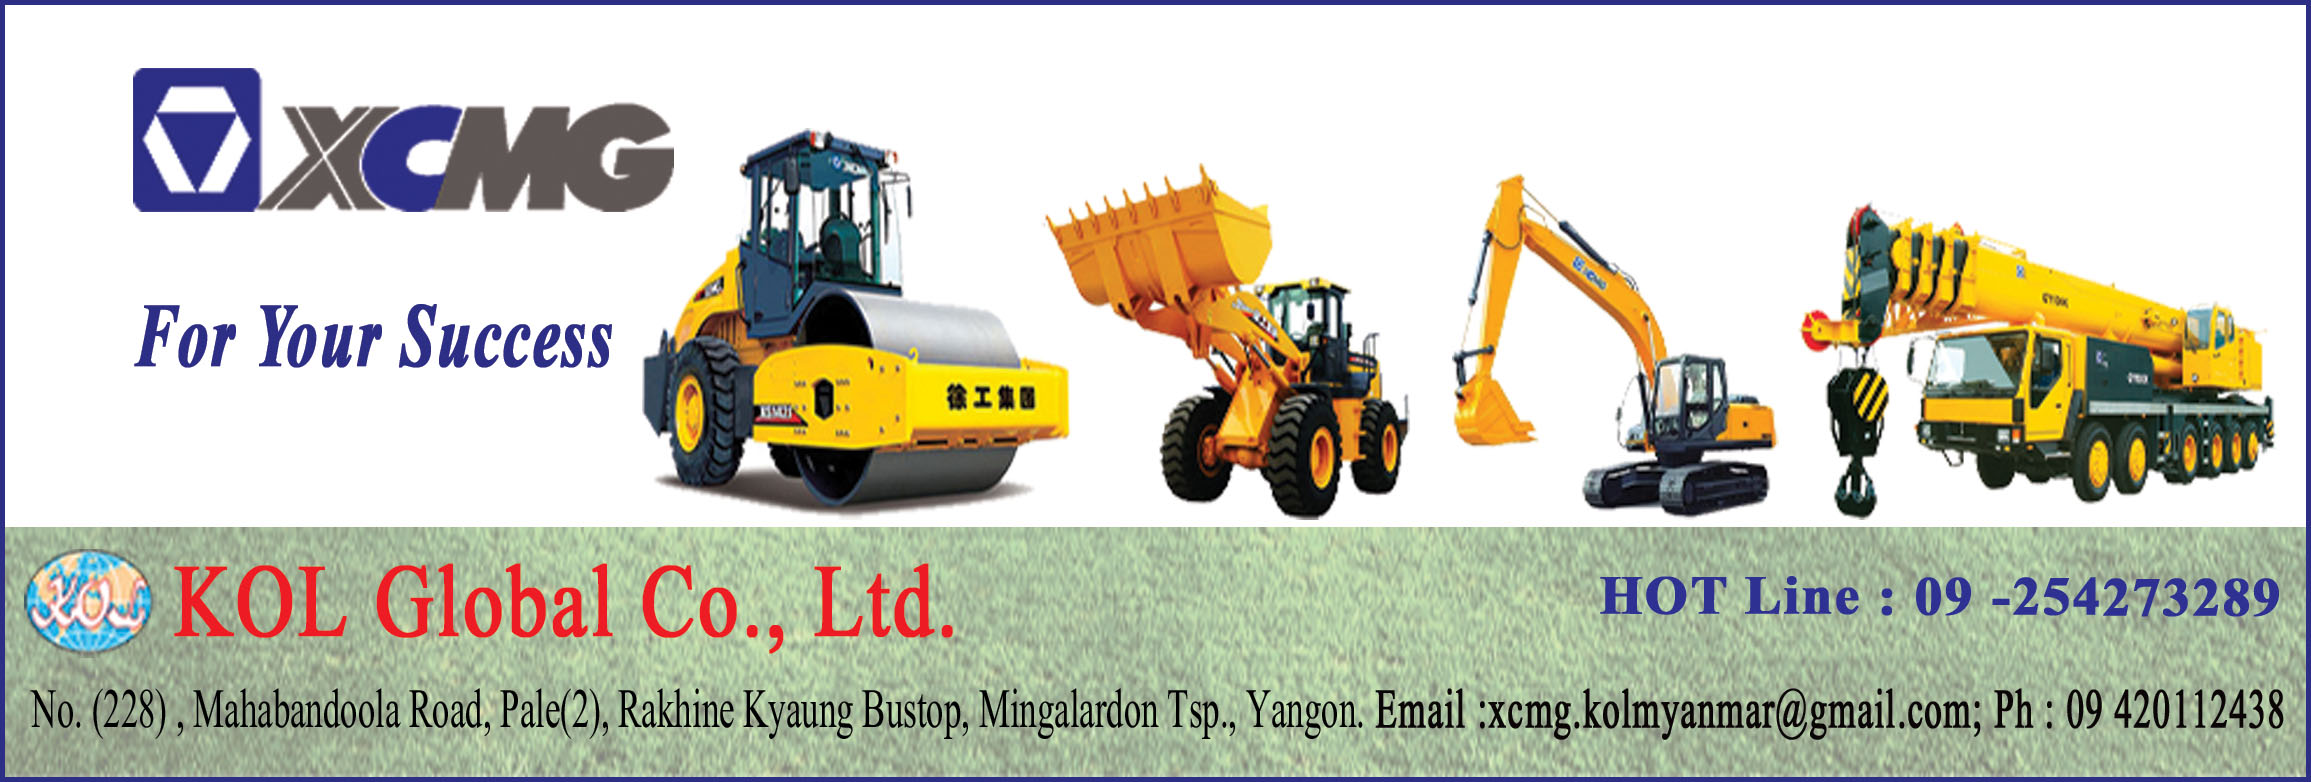 Kol Global Construction Machinery Co., Ltd.